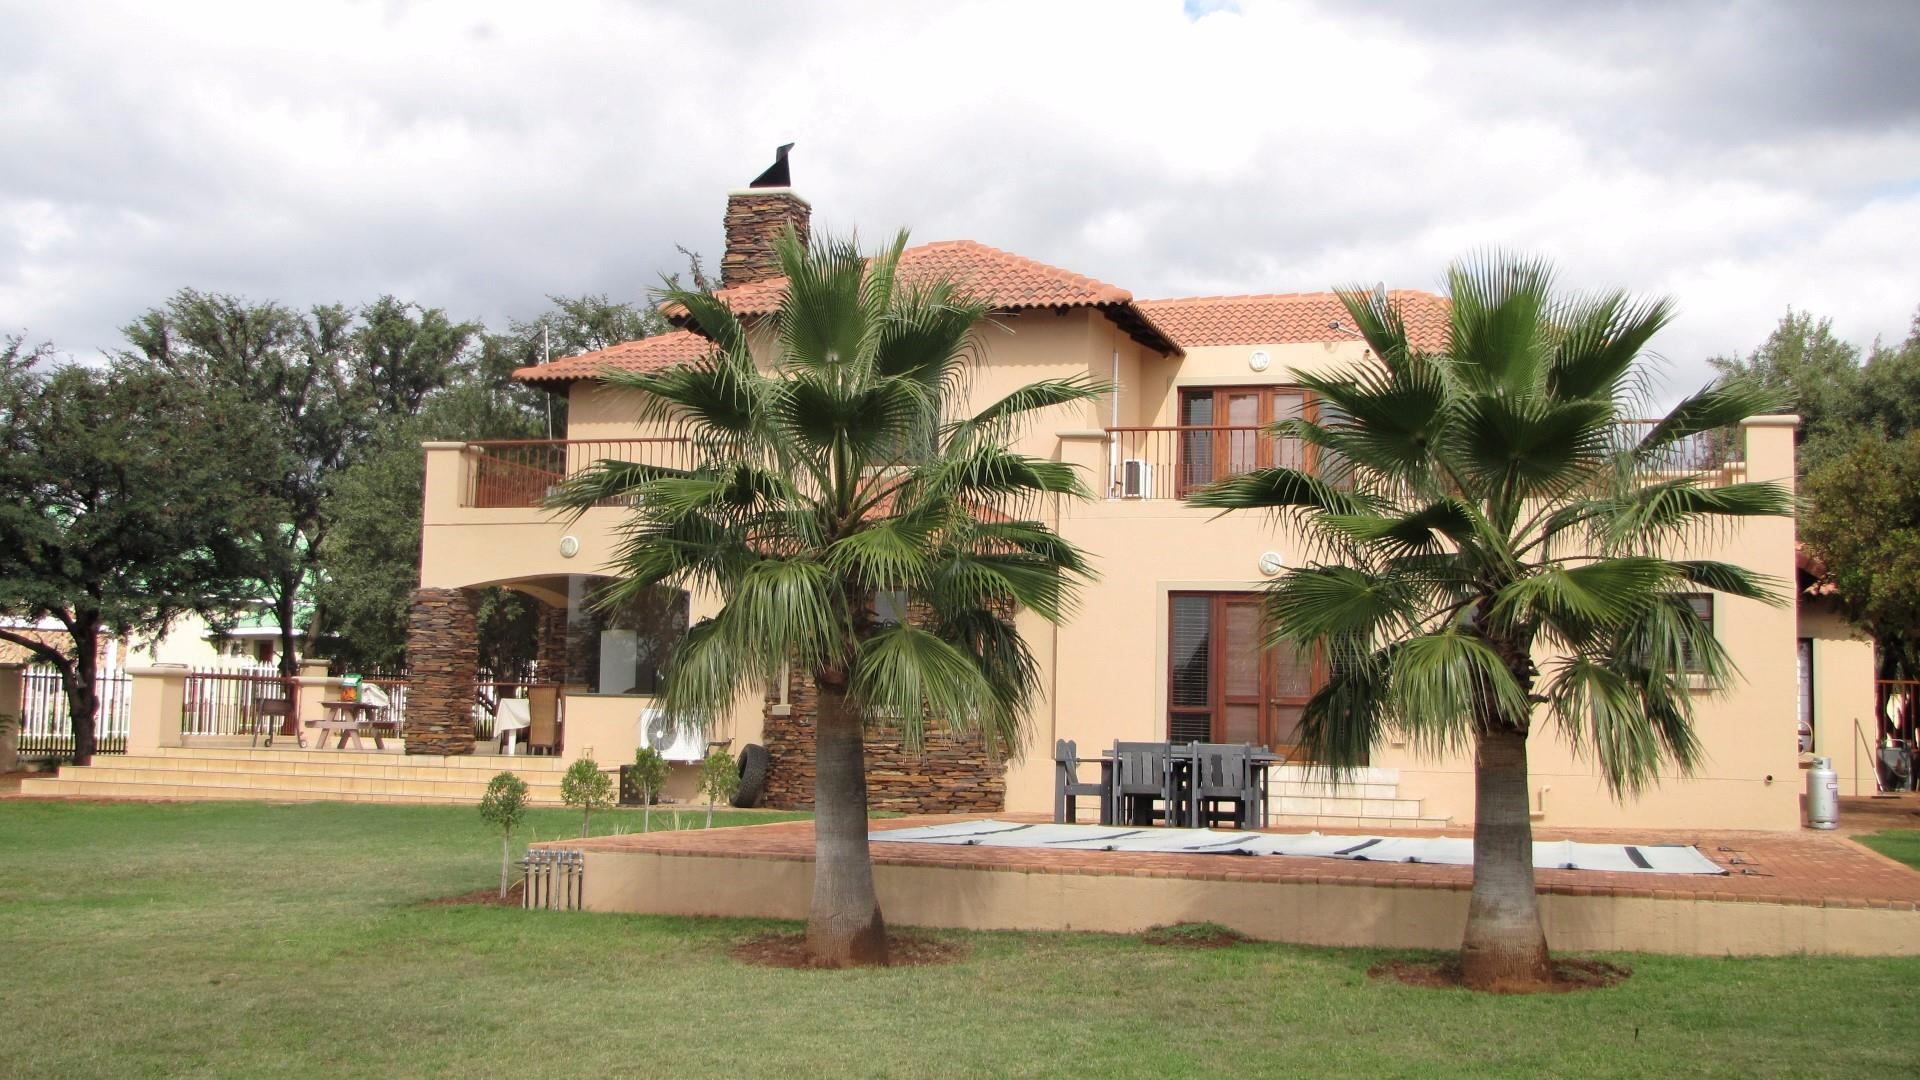 Pretoria, Kameelfontein Property  | Houses For Sale Kameelfontein, Kameelfontein, Golf Estate 4 bedrooms property for sale Price:3,550,000